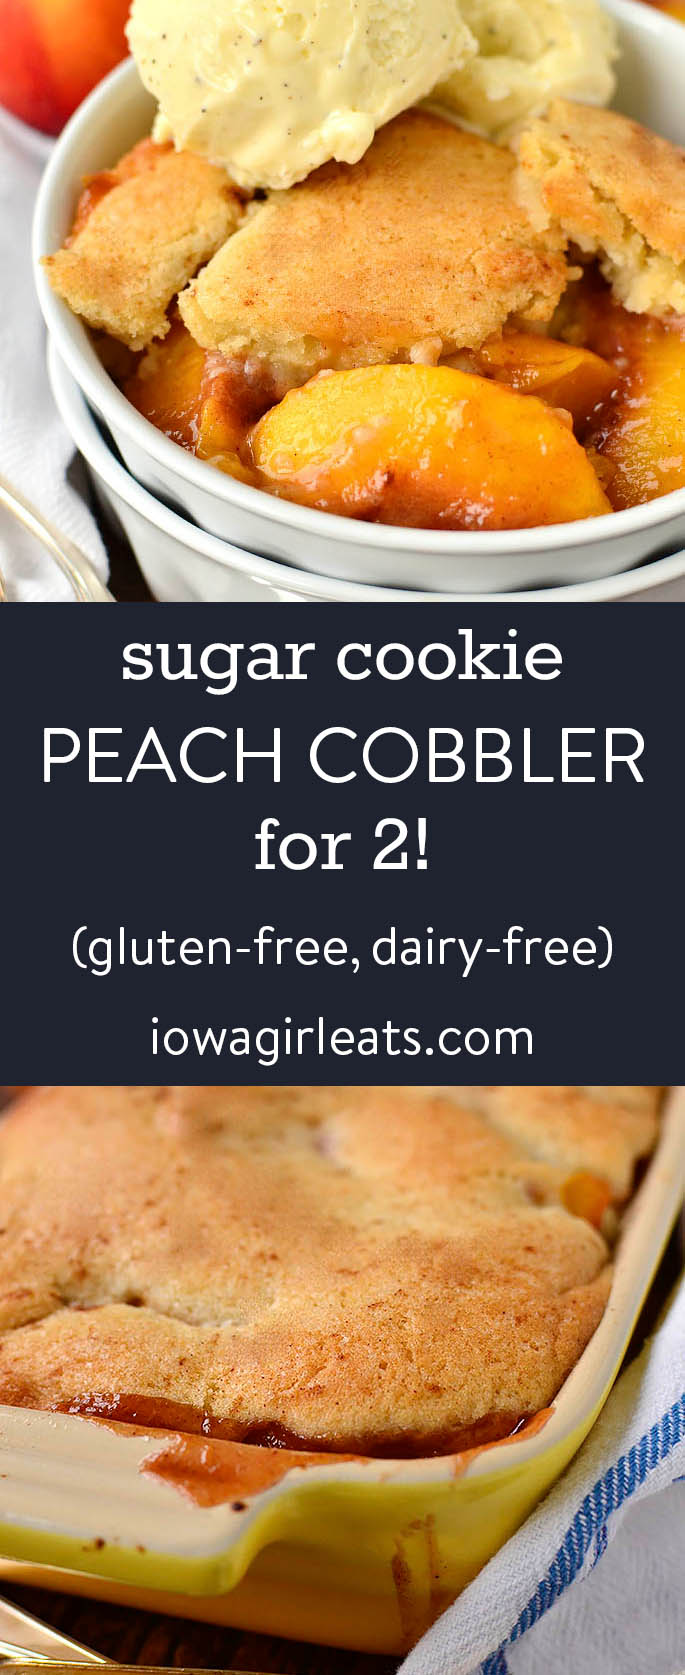 Photo collage of sugar cooking peach cobbler for 2